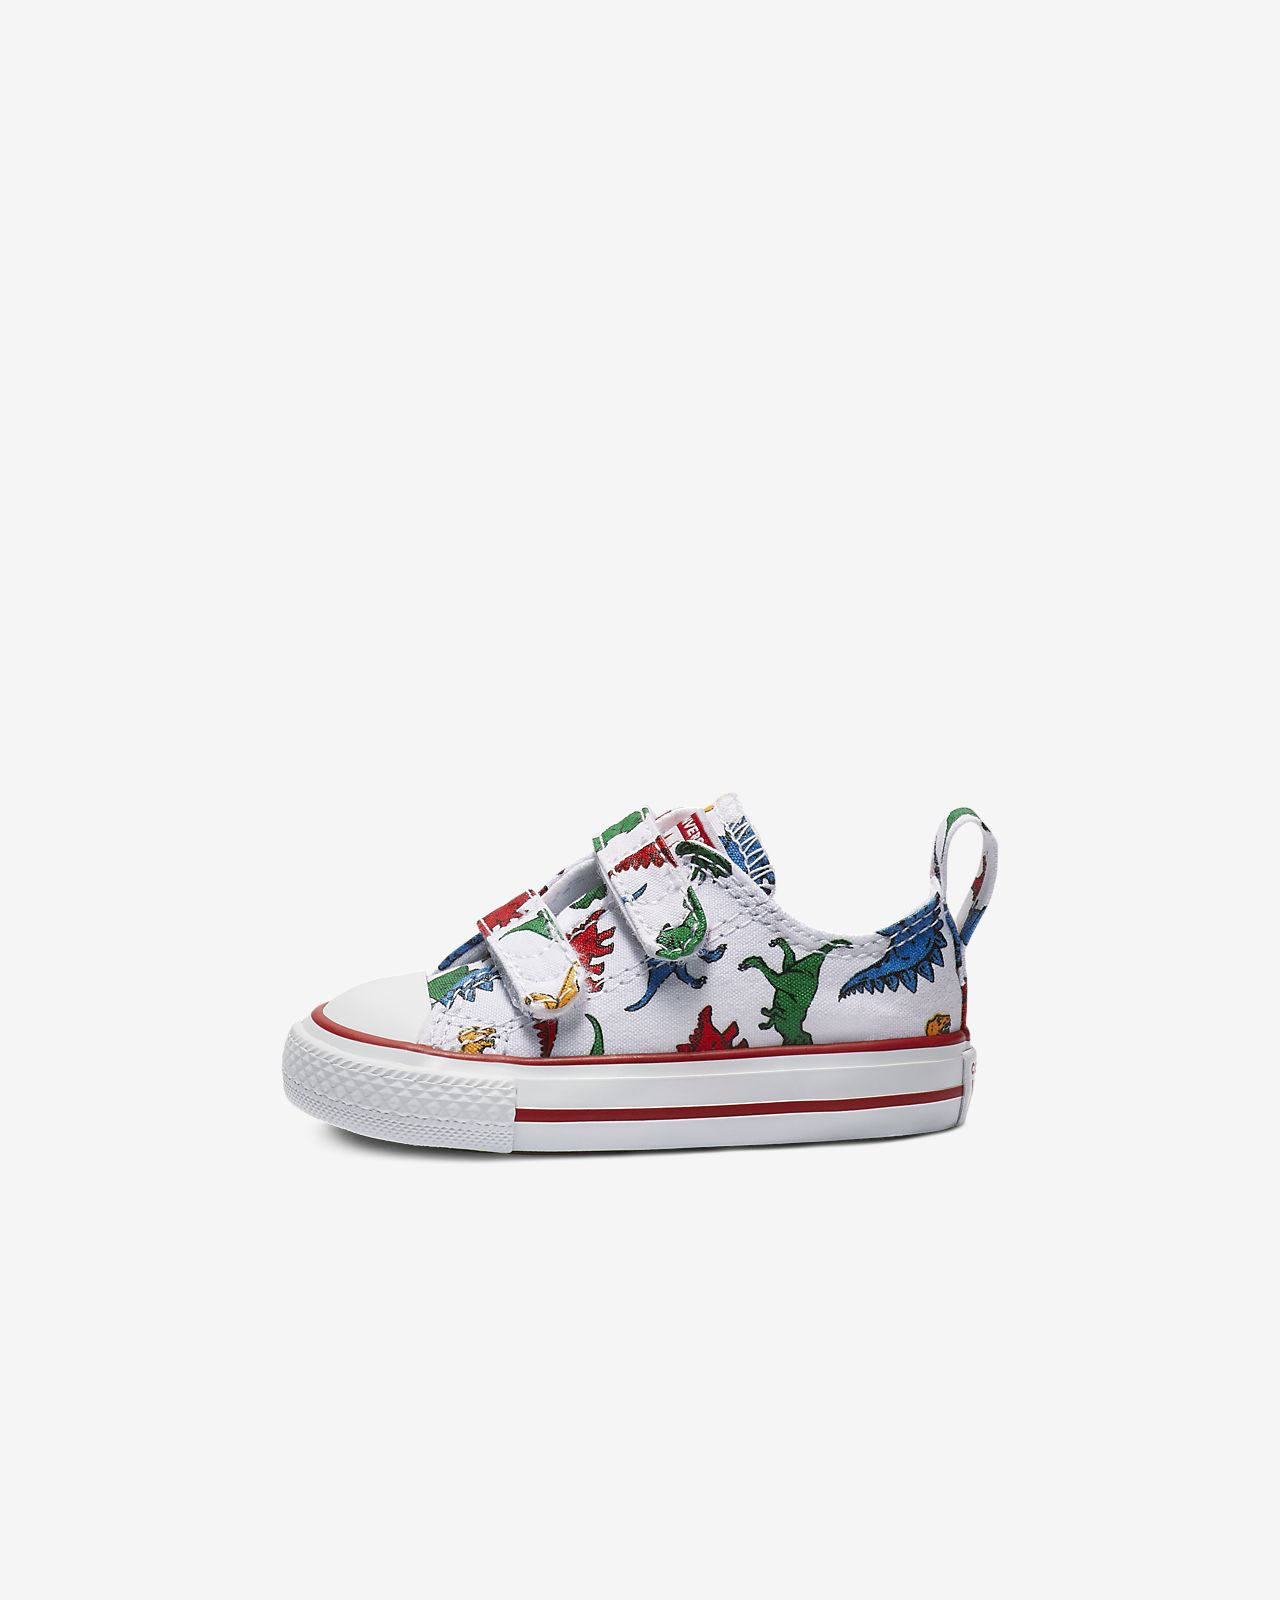 Converse Chuck Taylor All Star Hook and Loop Dinoverse Low Top Toddler Shoe